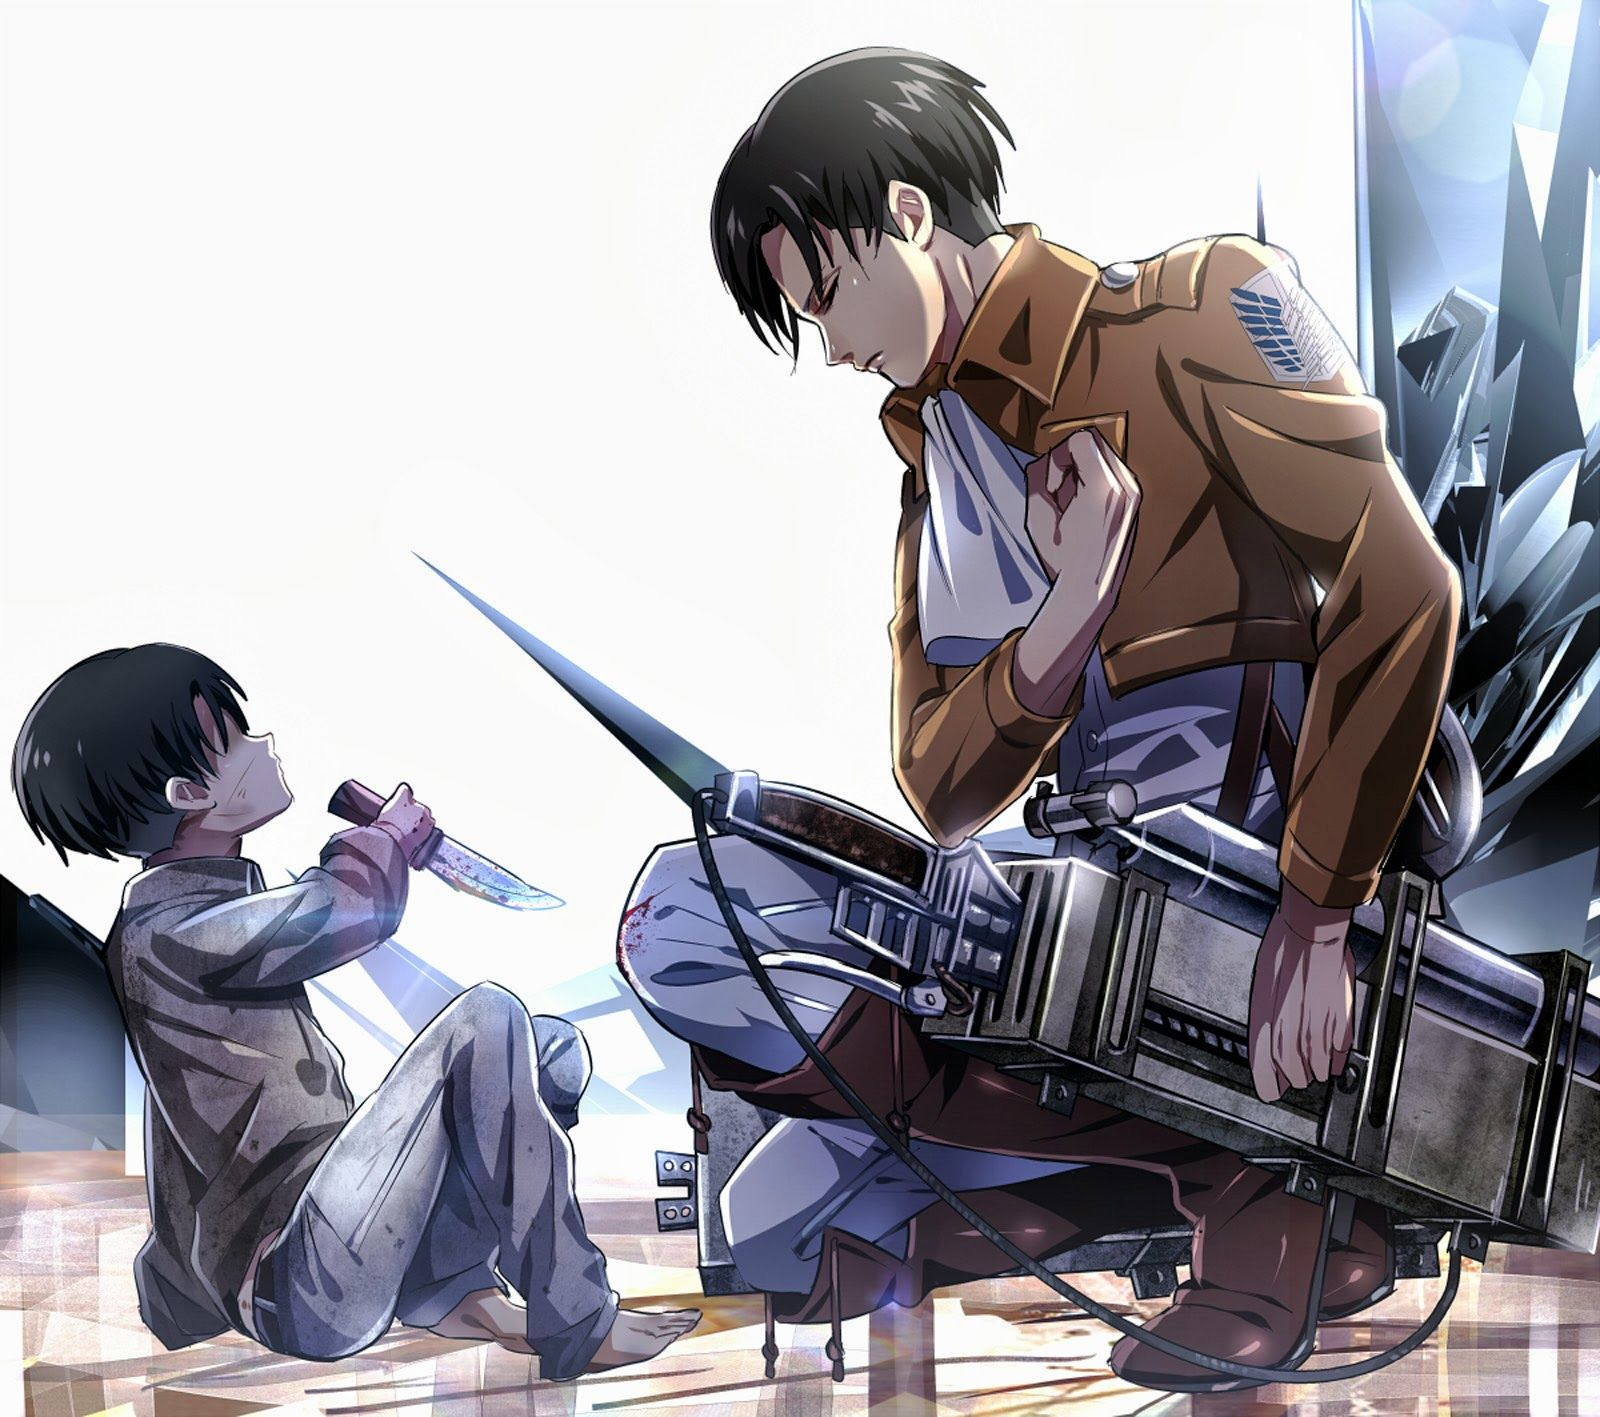 Levi Attack On Titan Wallpapers Top Free Levi Attack On Titan